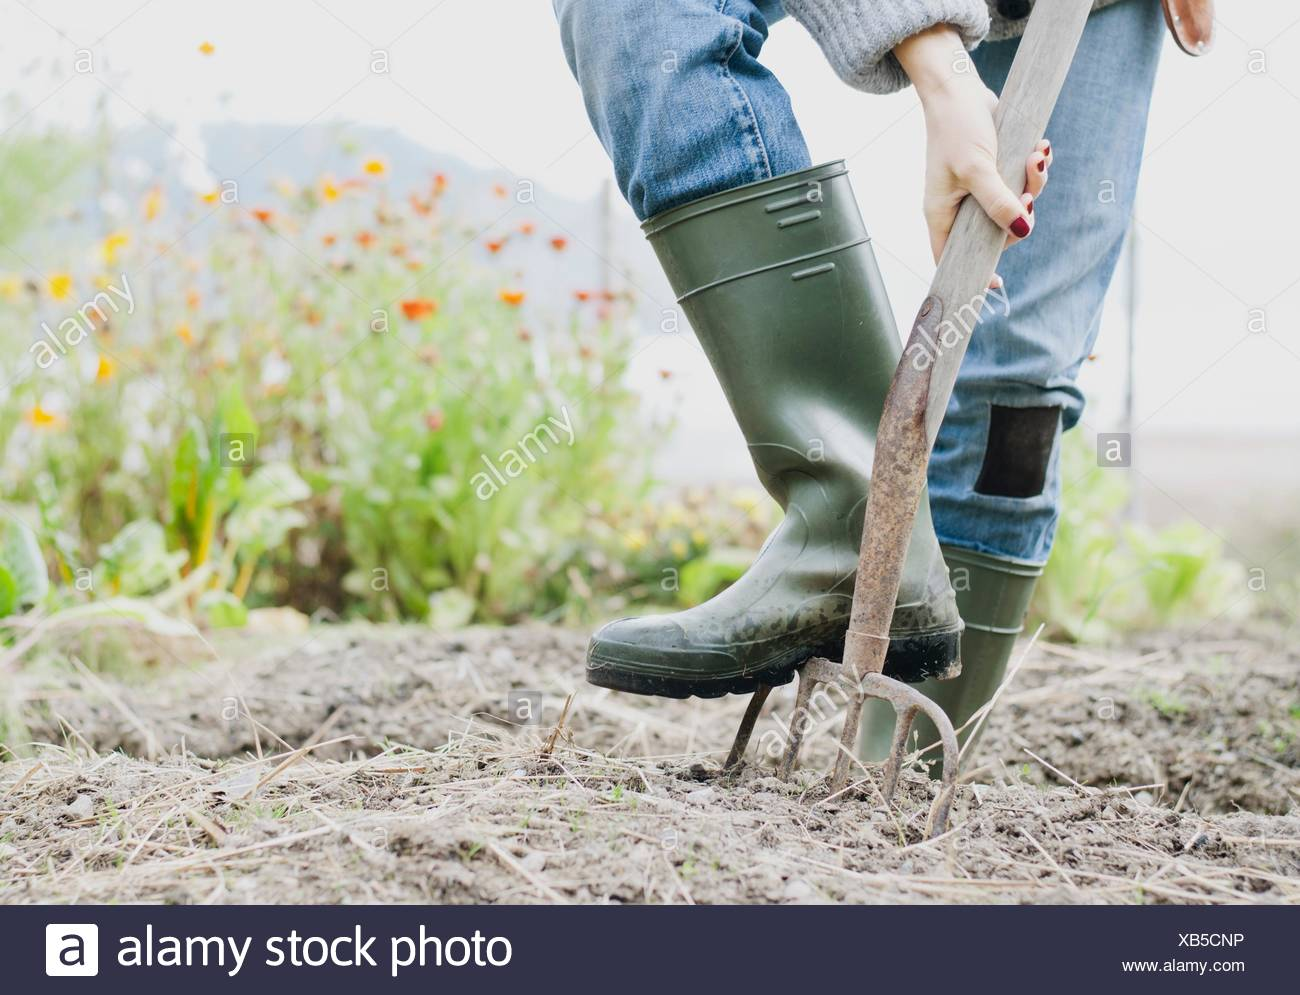 Cropped shot of woman wearing rubber boots digging organic garden with fork - Stock Image